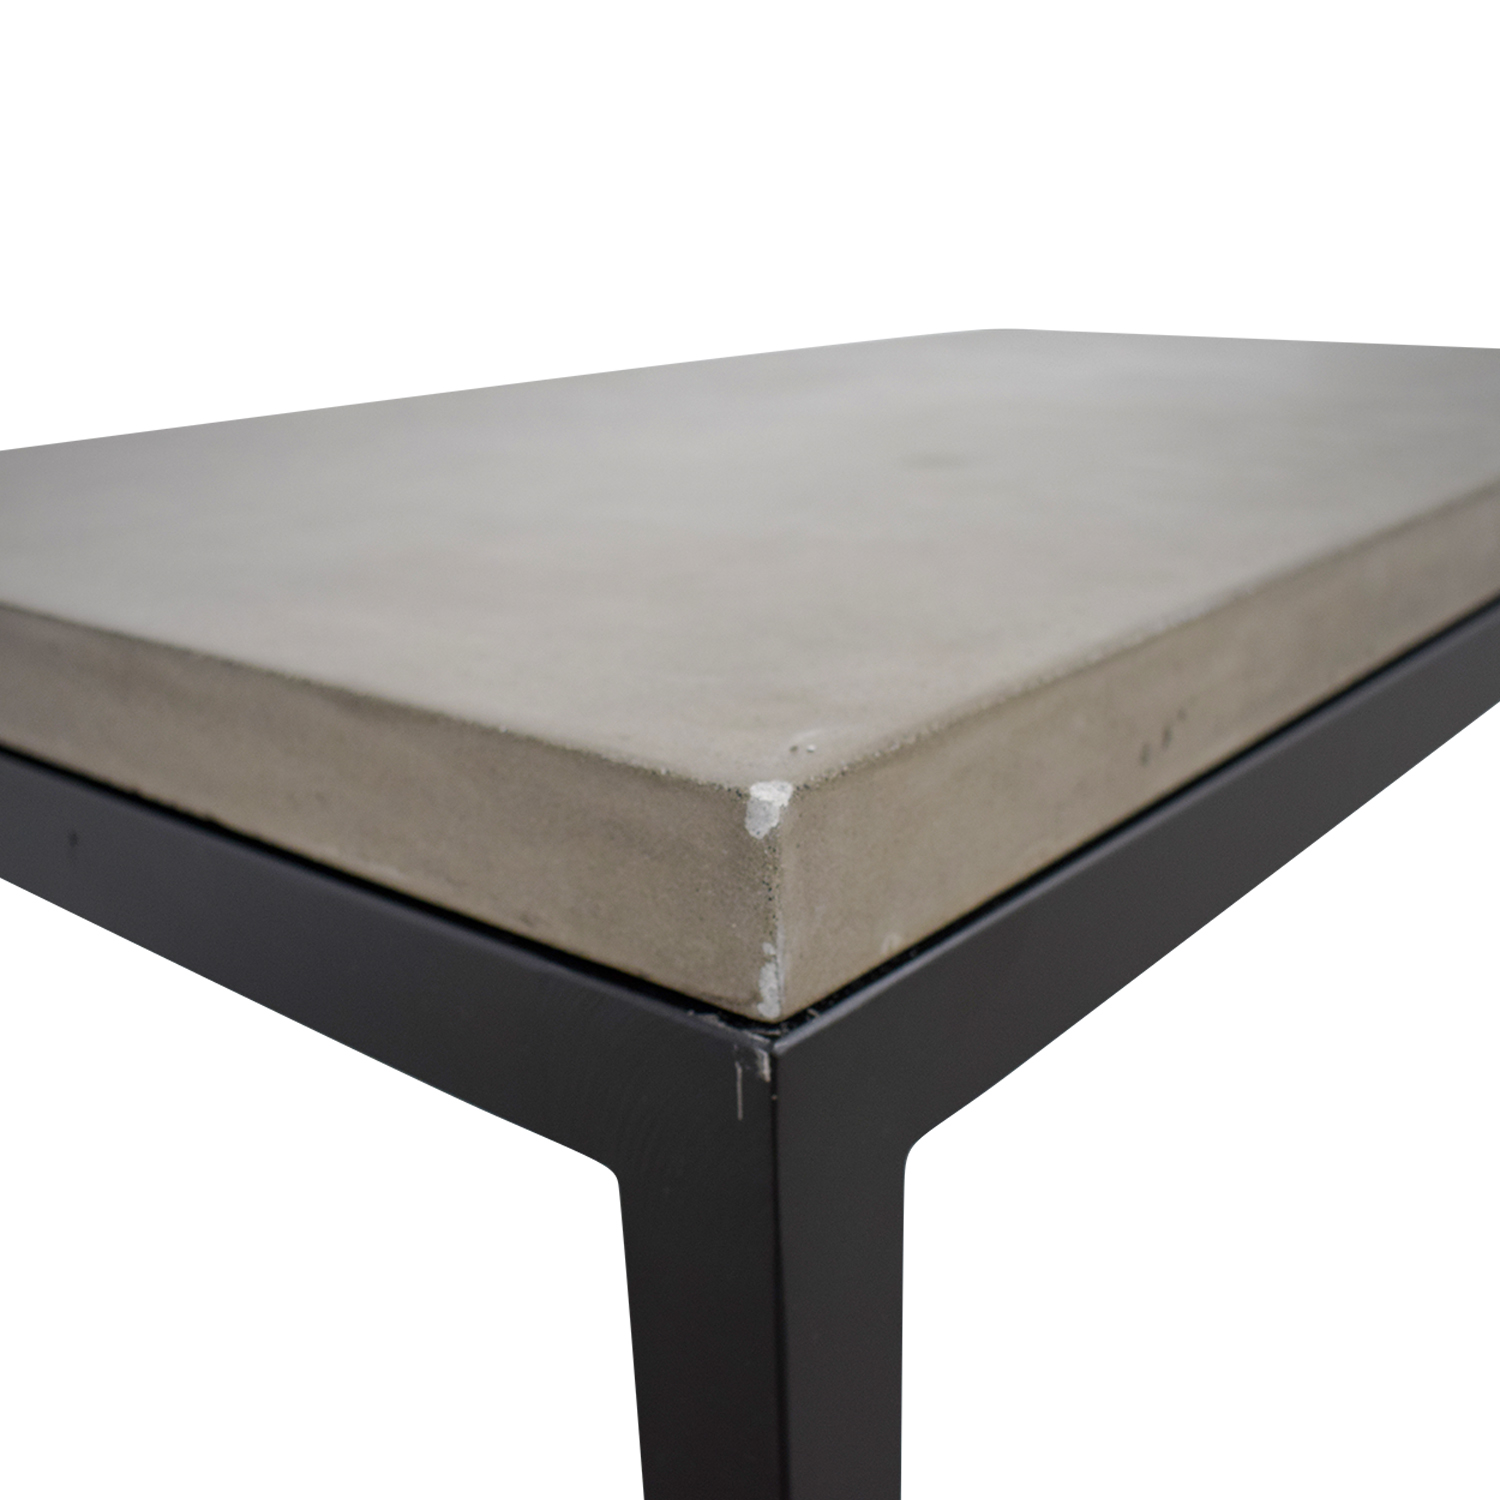 69 off crate barrel crate barrel parsons concrete top dark steel base small rectangular coffee table tables